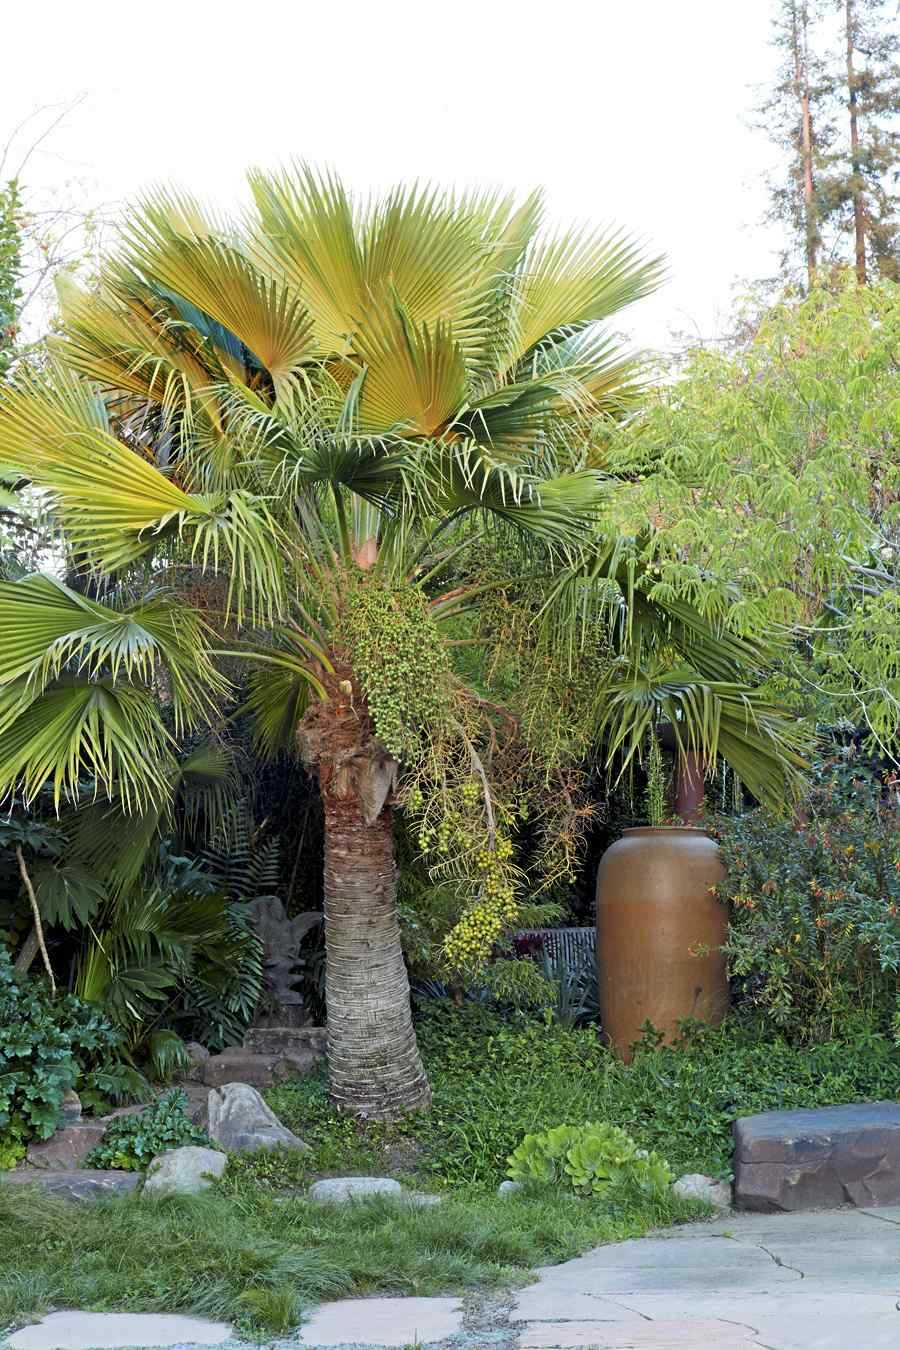 There's a palm tree for every garden, horticulturist says